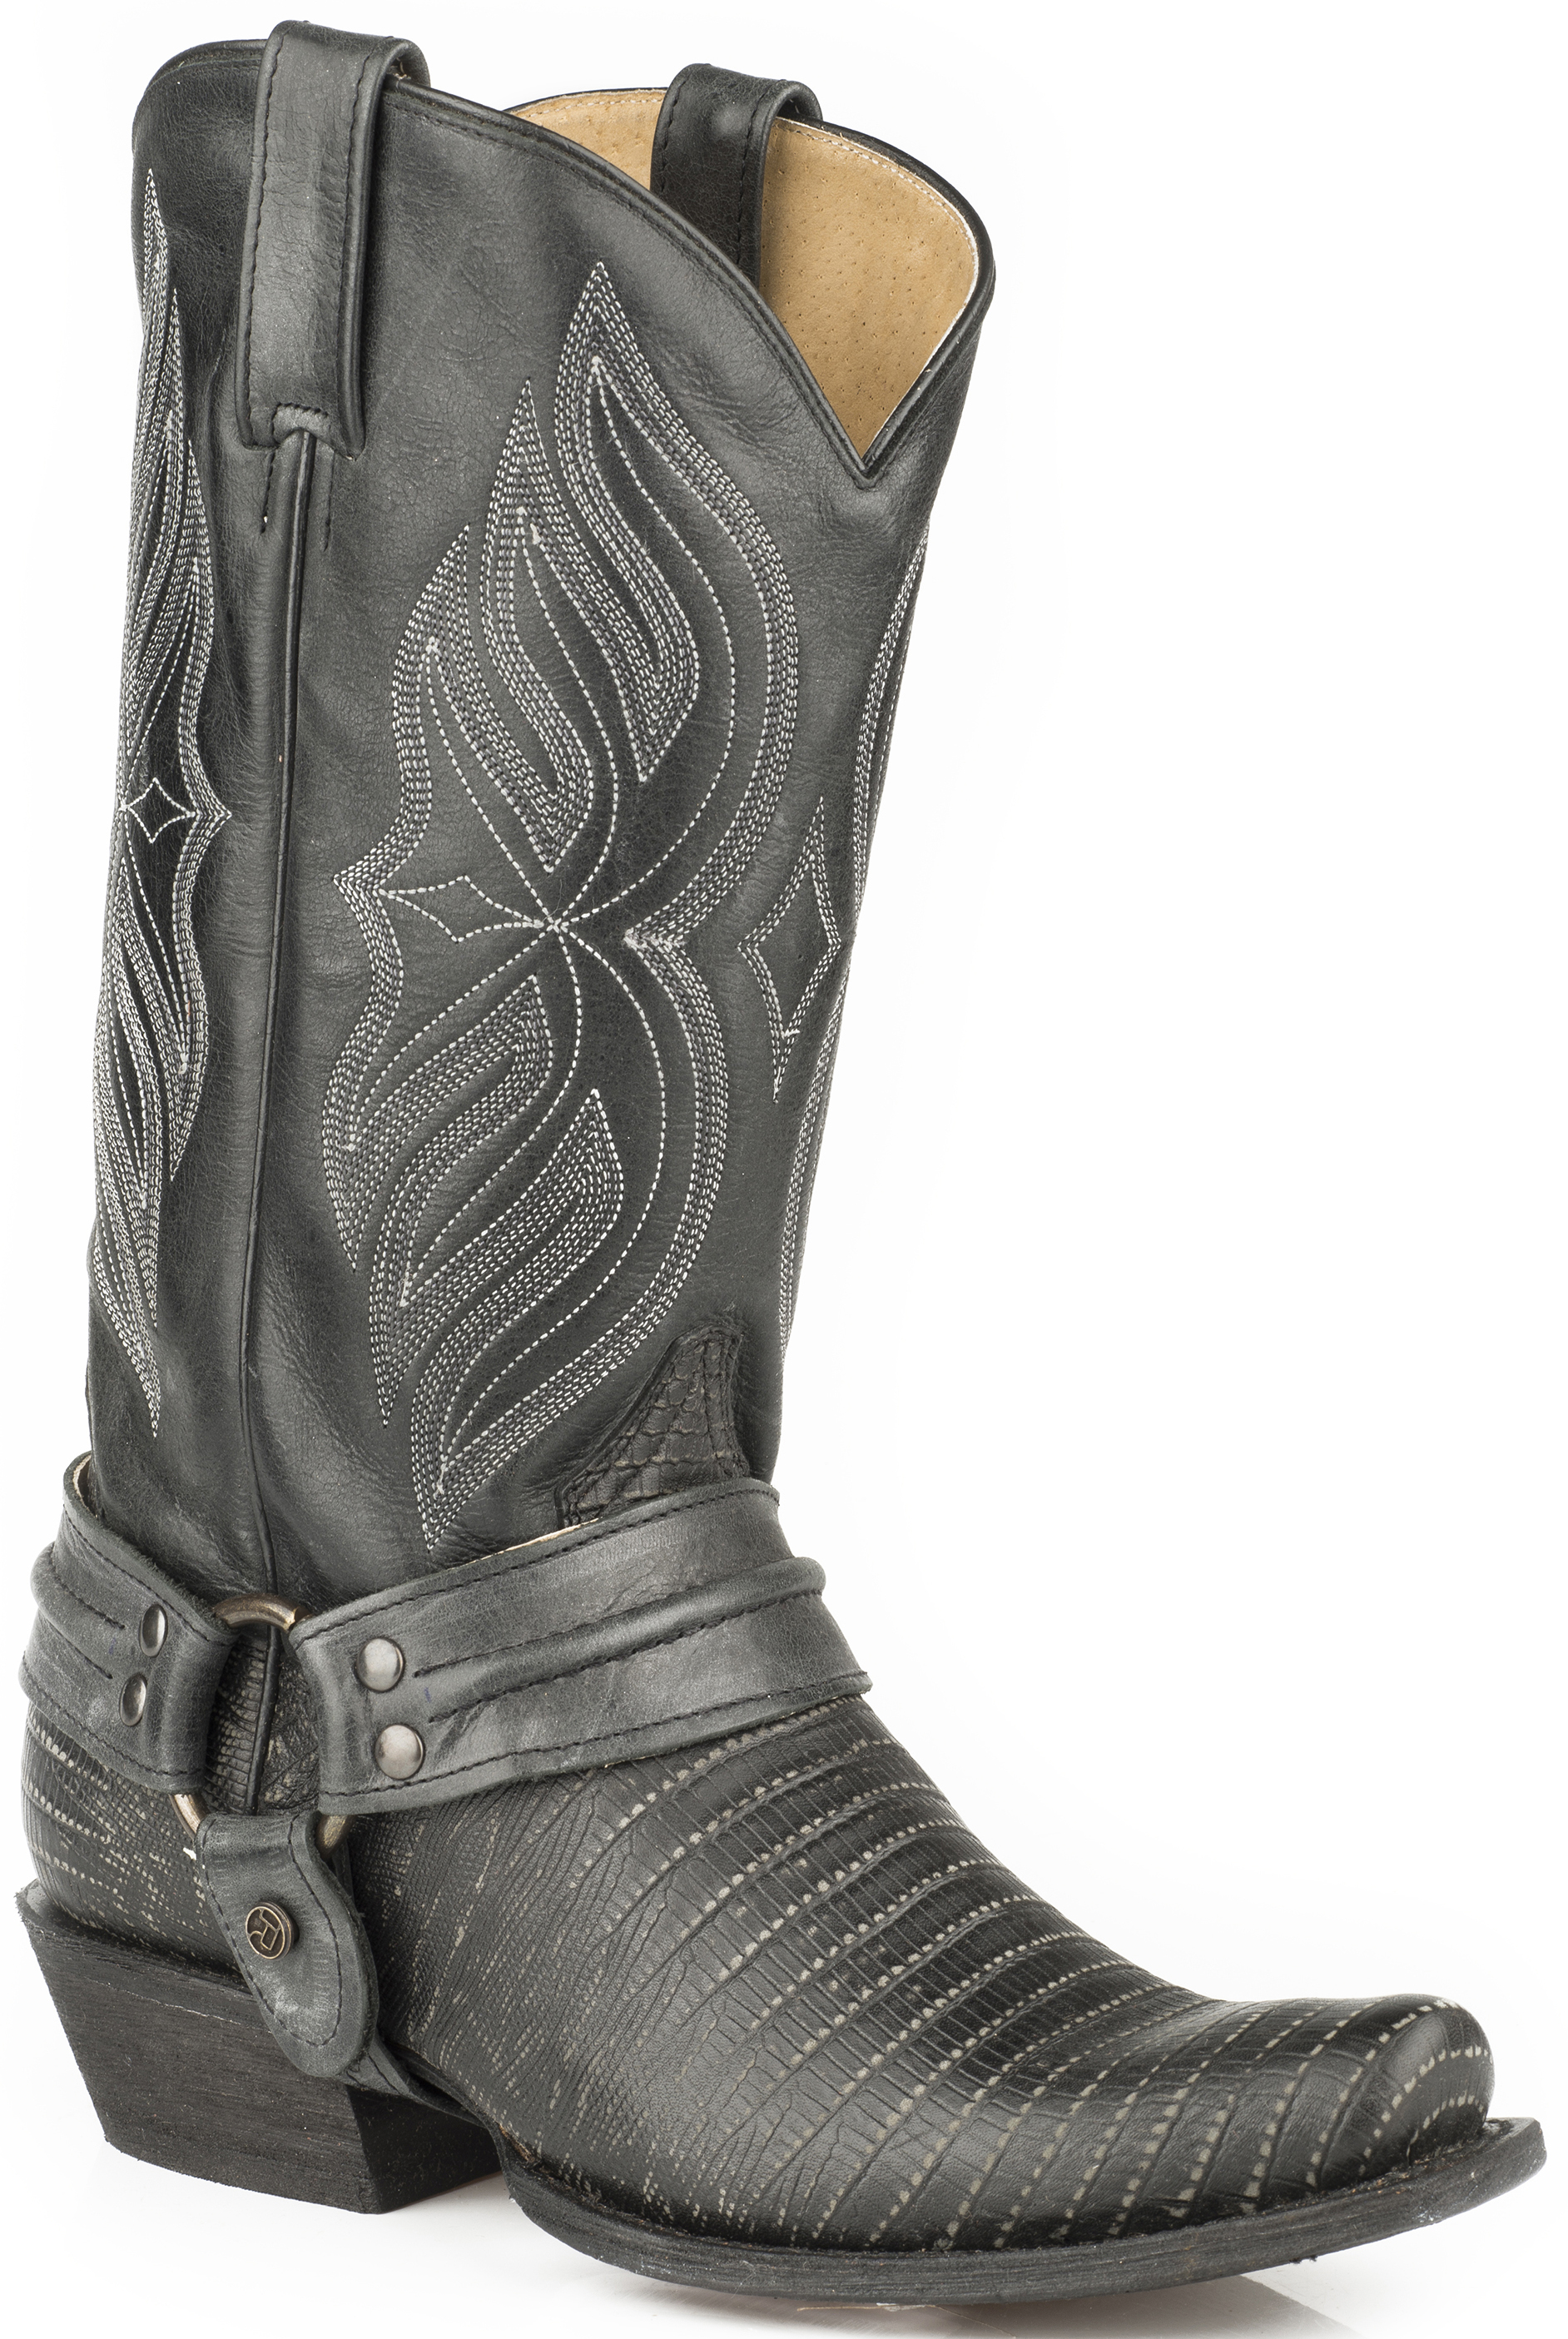 Harness Boots for Men - Sheplers